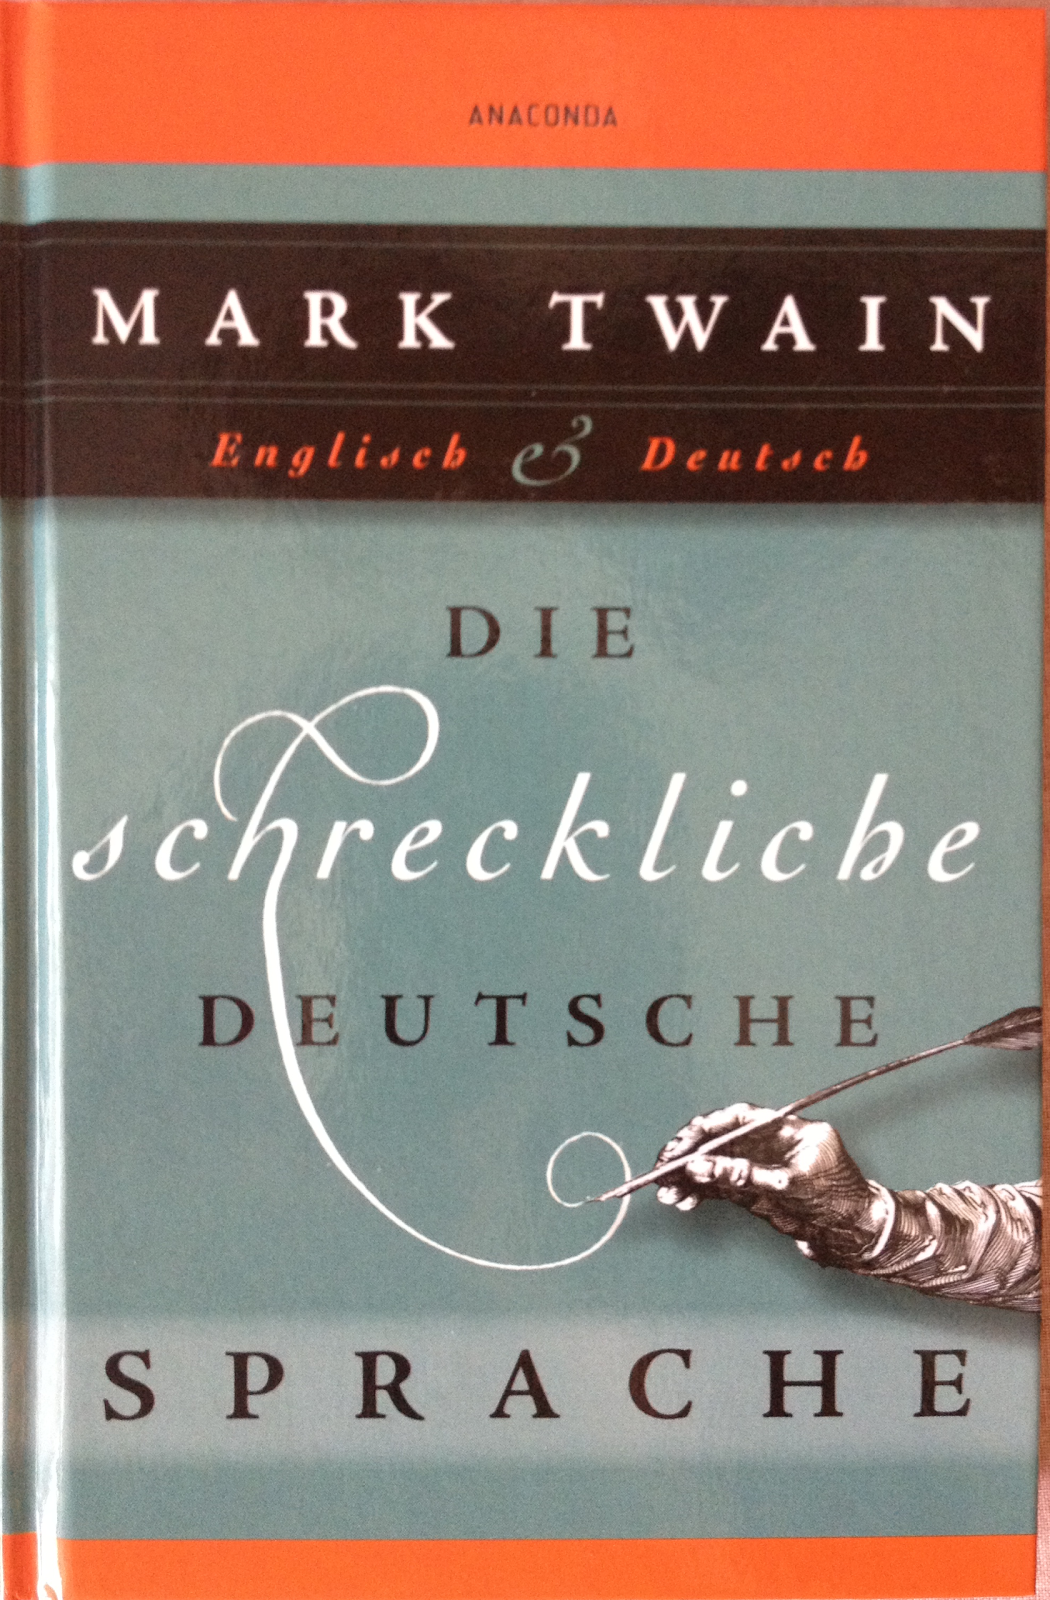 awful german language essay Hello everyone, i came upon what i found to be a gut-bustingly funny essay, of which perhaps many of you are already aware, called the awful german language written by mark twain.